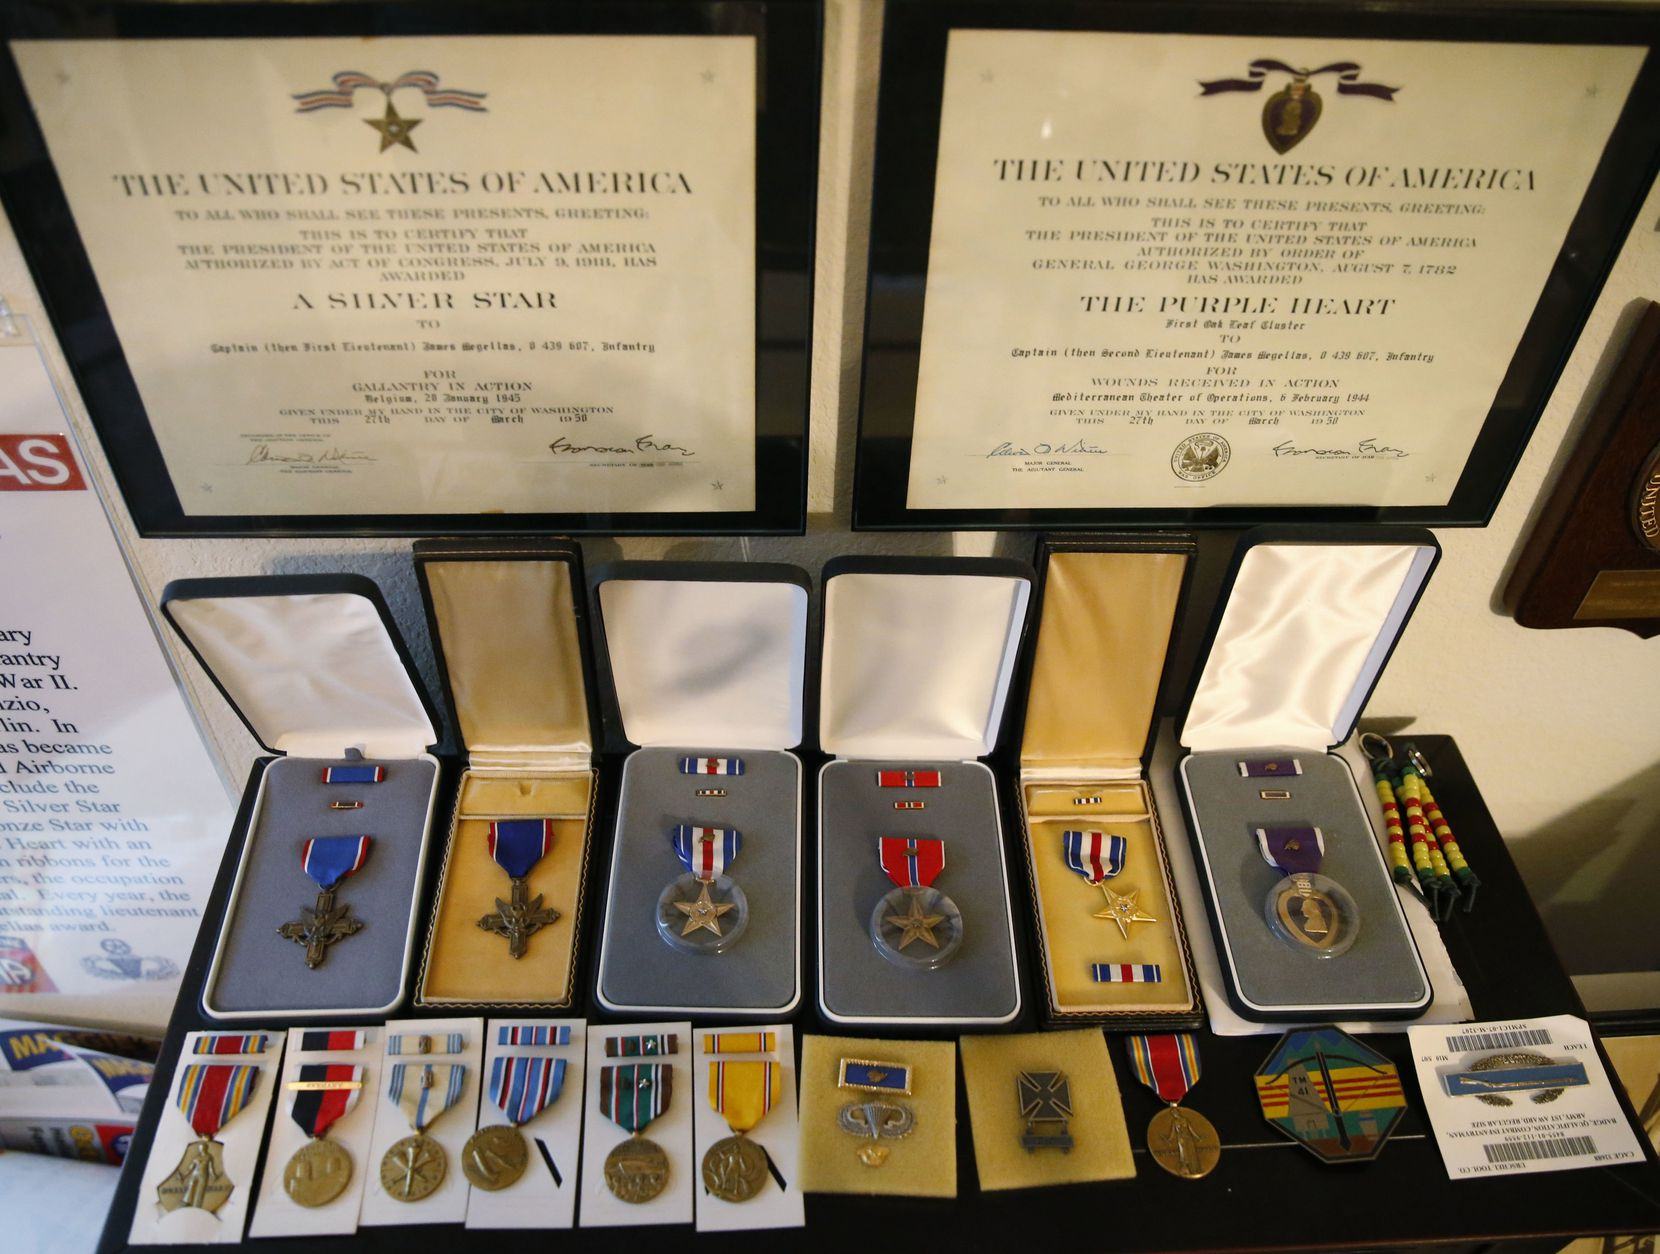 A collection of medals of James Megellas, a 101-year-old World War II veteran and the most decorated officer in The 82nd Airborne, at his home in Colleyville, Texas on May 16, 2018.